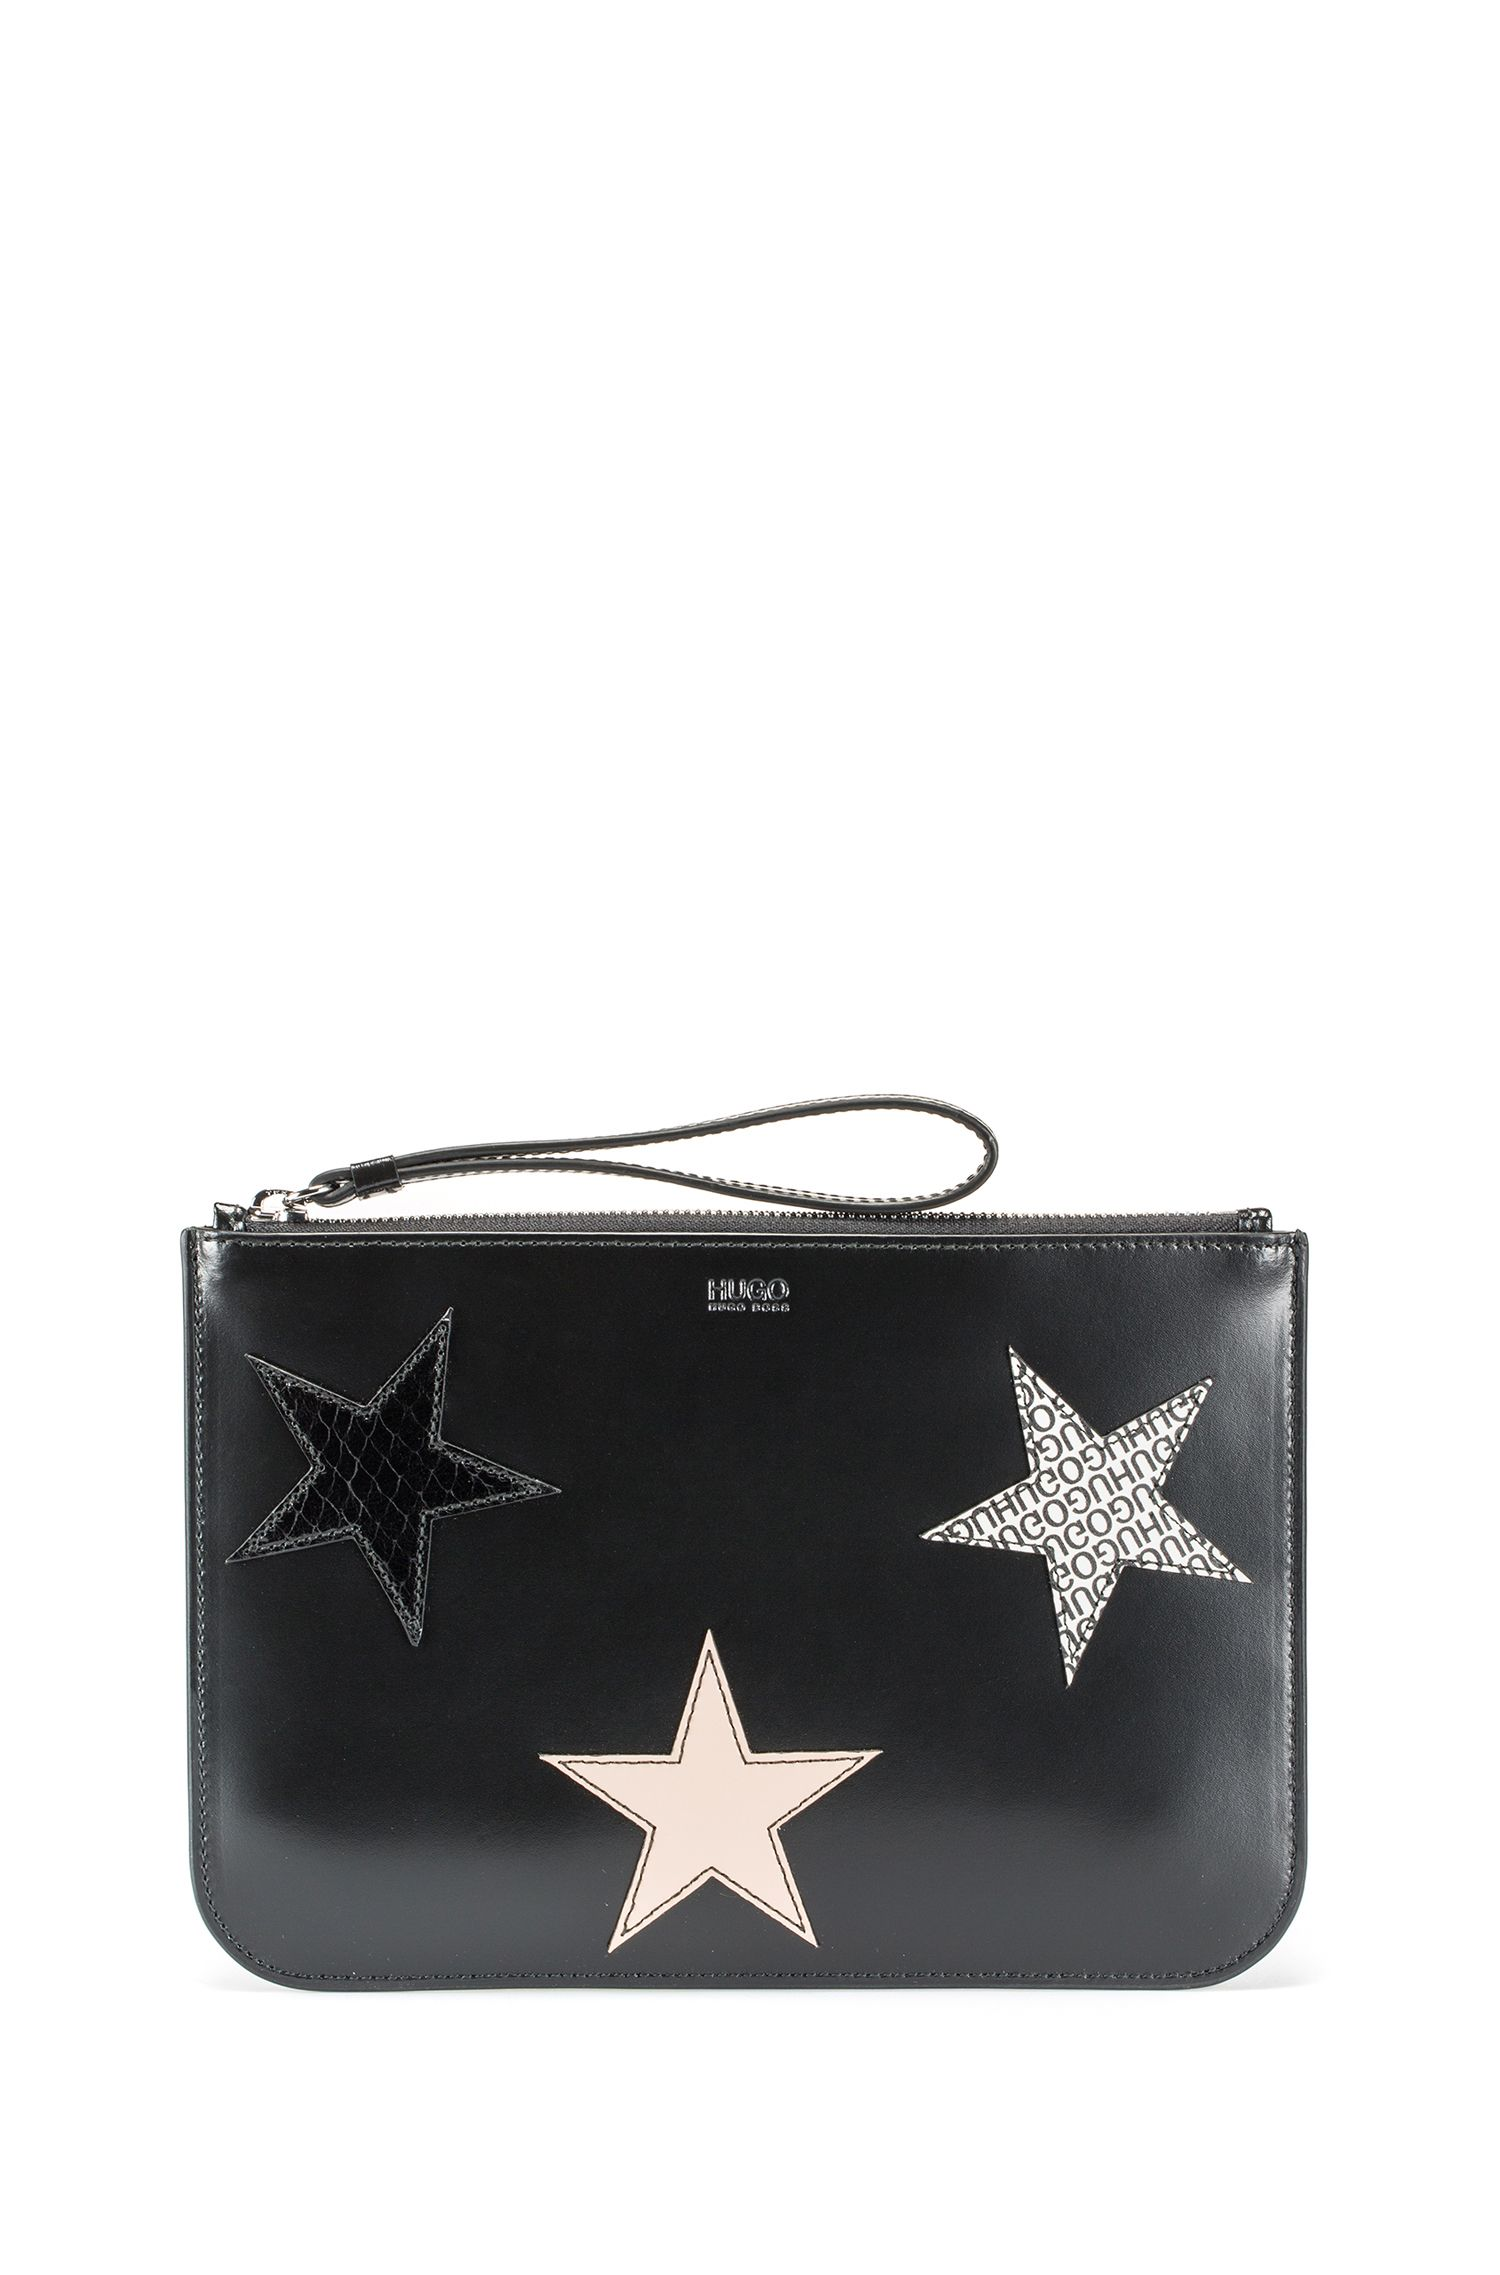 Leather clutch bag with calf-leather star appliqués, Black